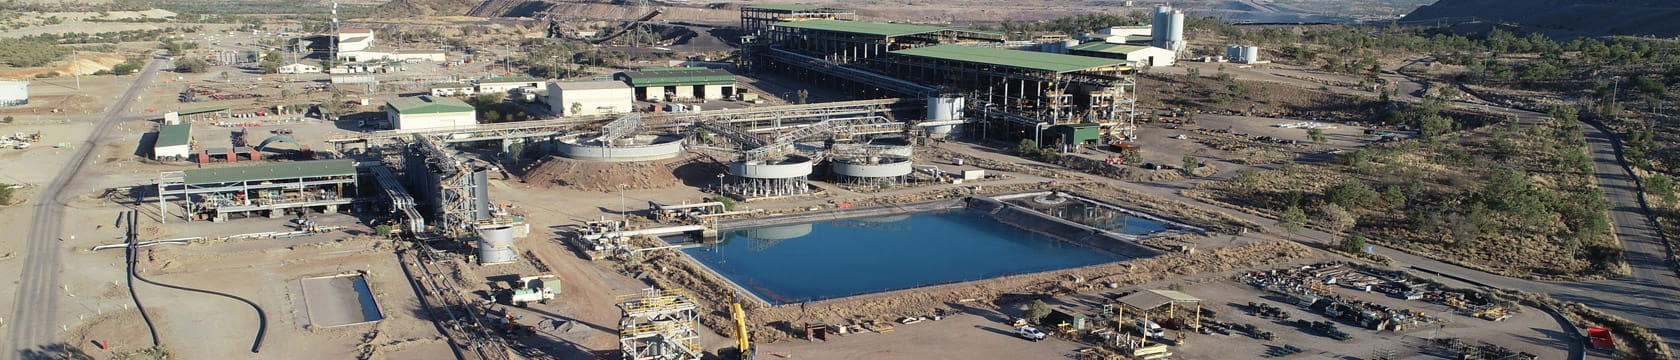 aerial shot of mineral processing infrastructure